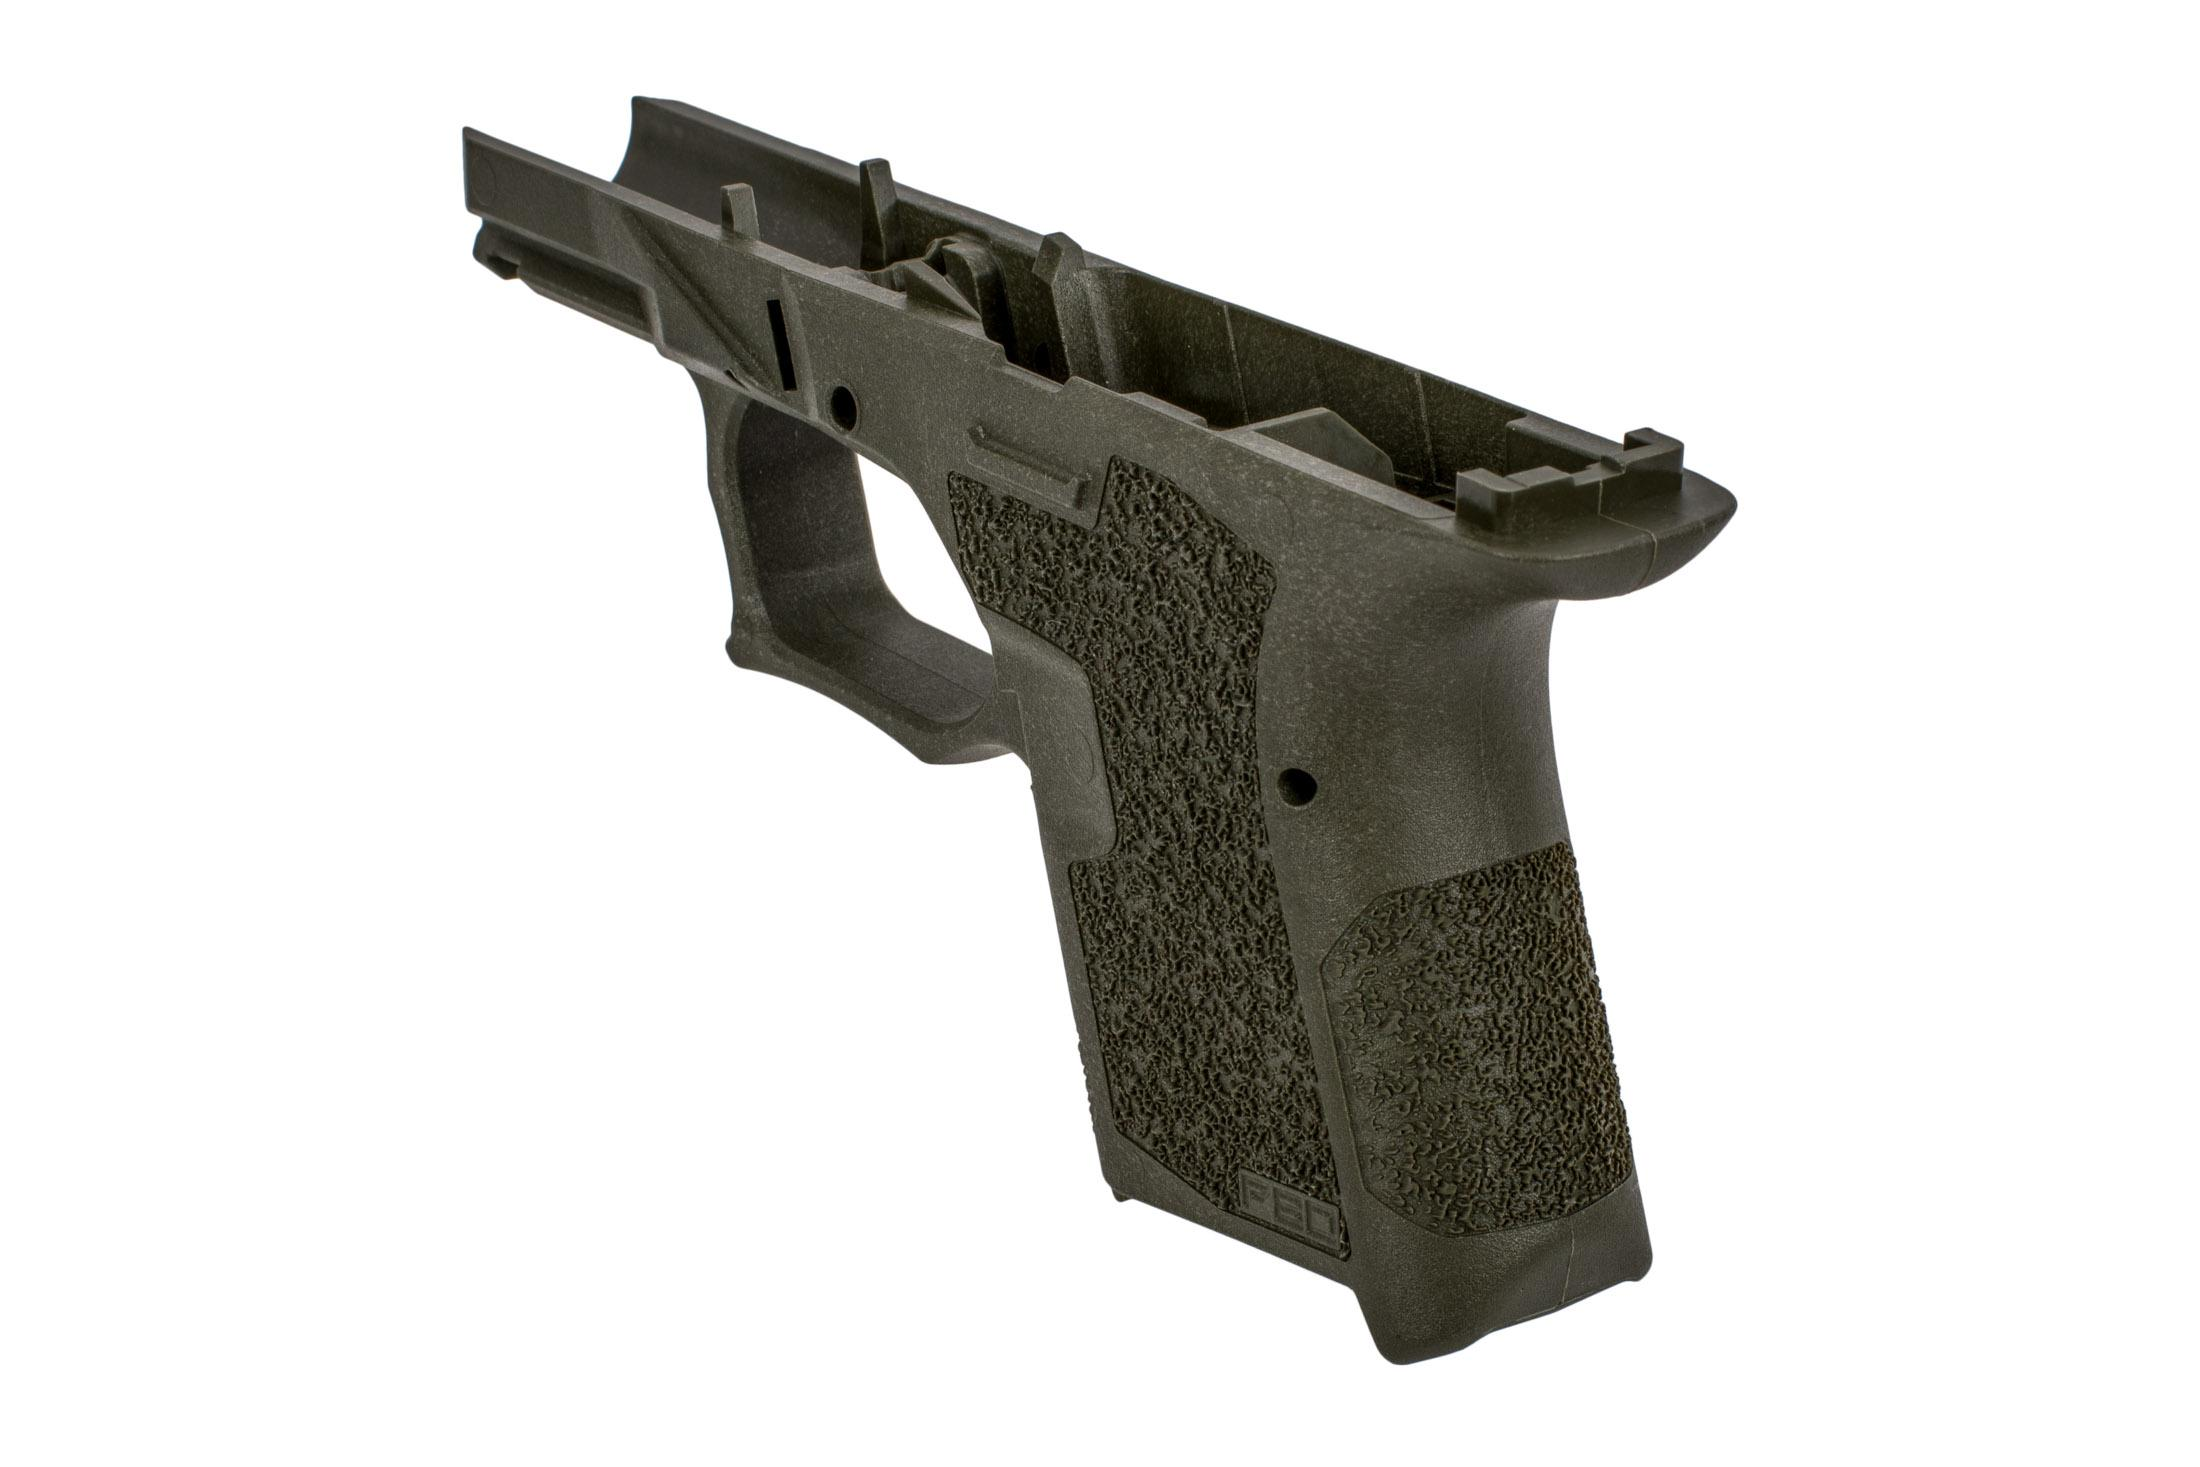 Polymer 80 subcompact serialized frame olive drab green features a vertical grip angle